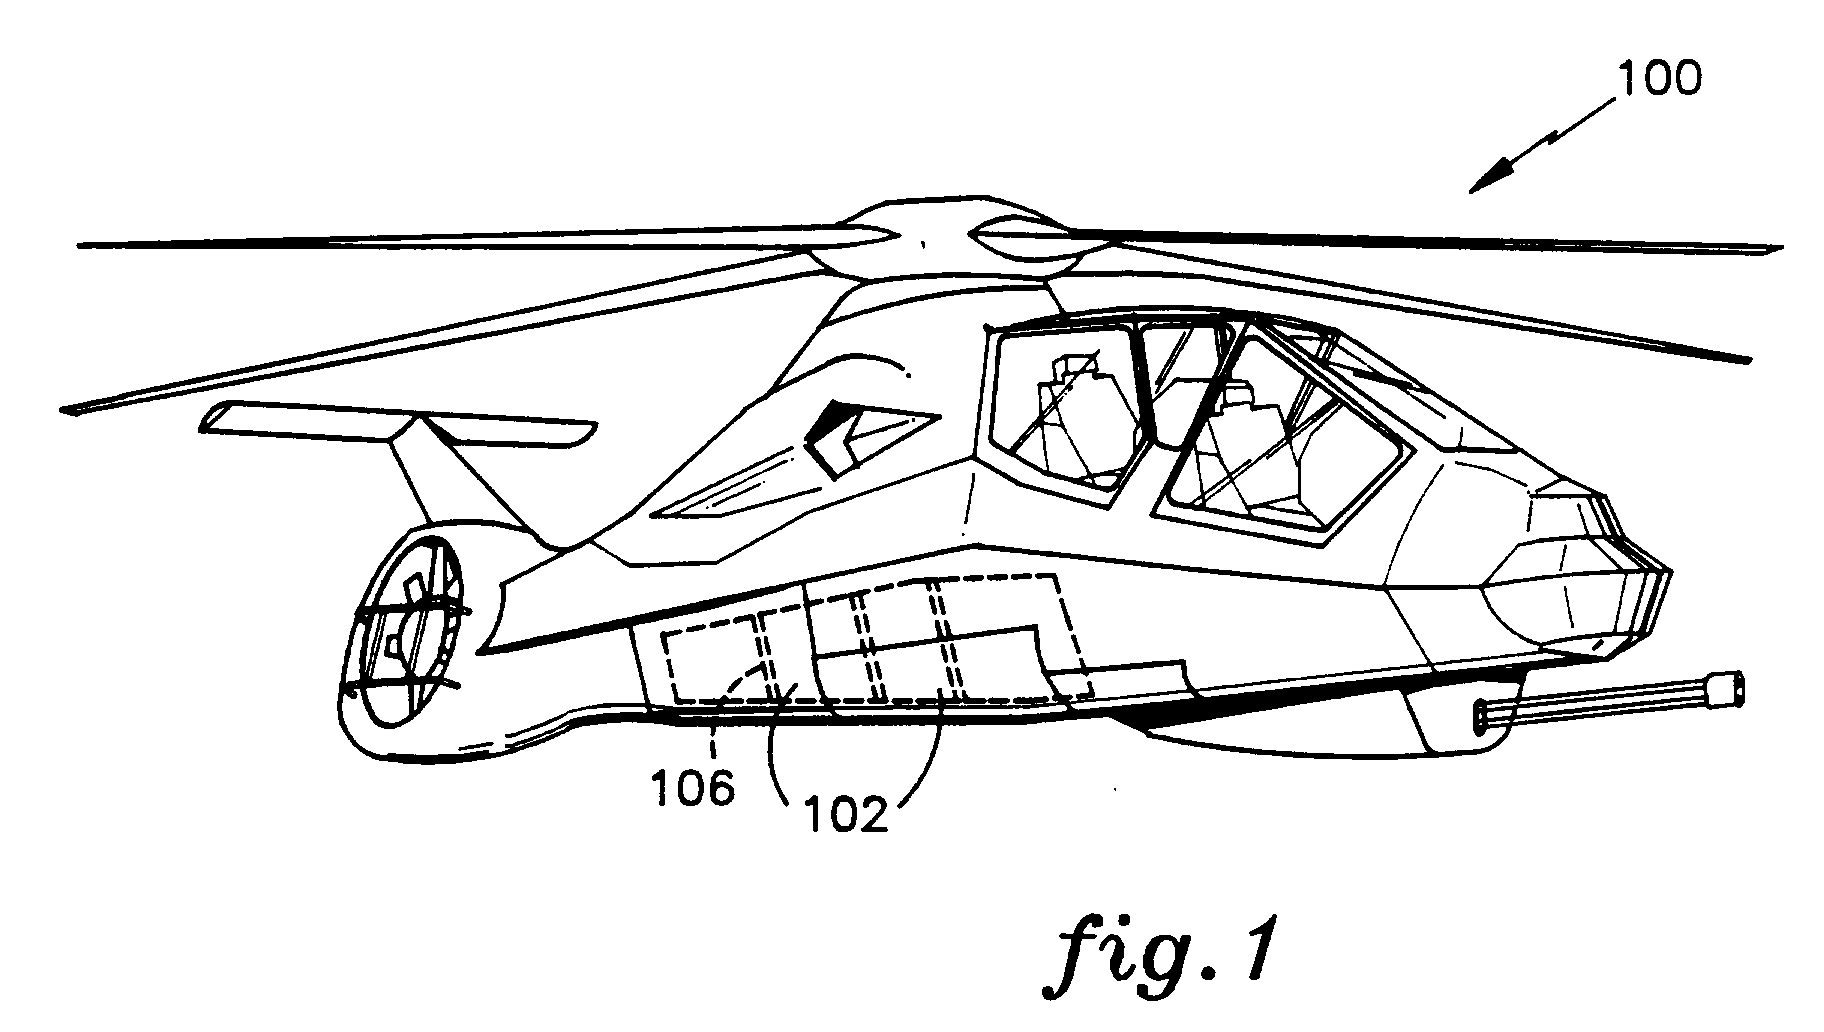 Army Helicopter Easy Drawings Pictures to Pin on Pinterest ...